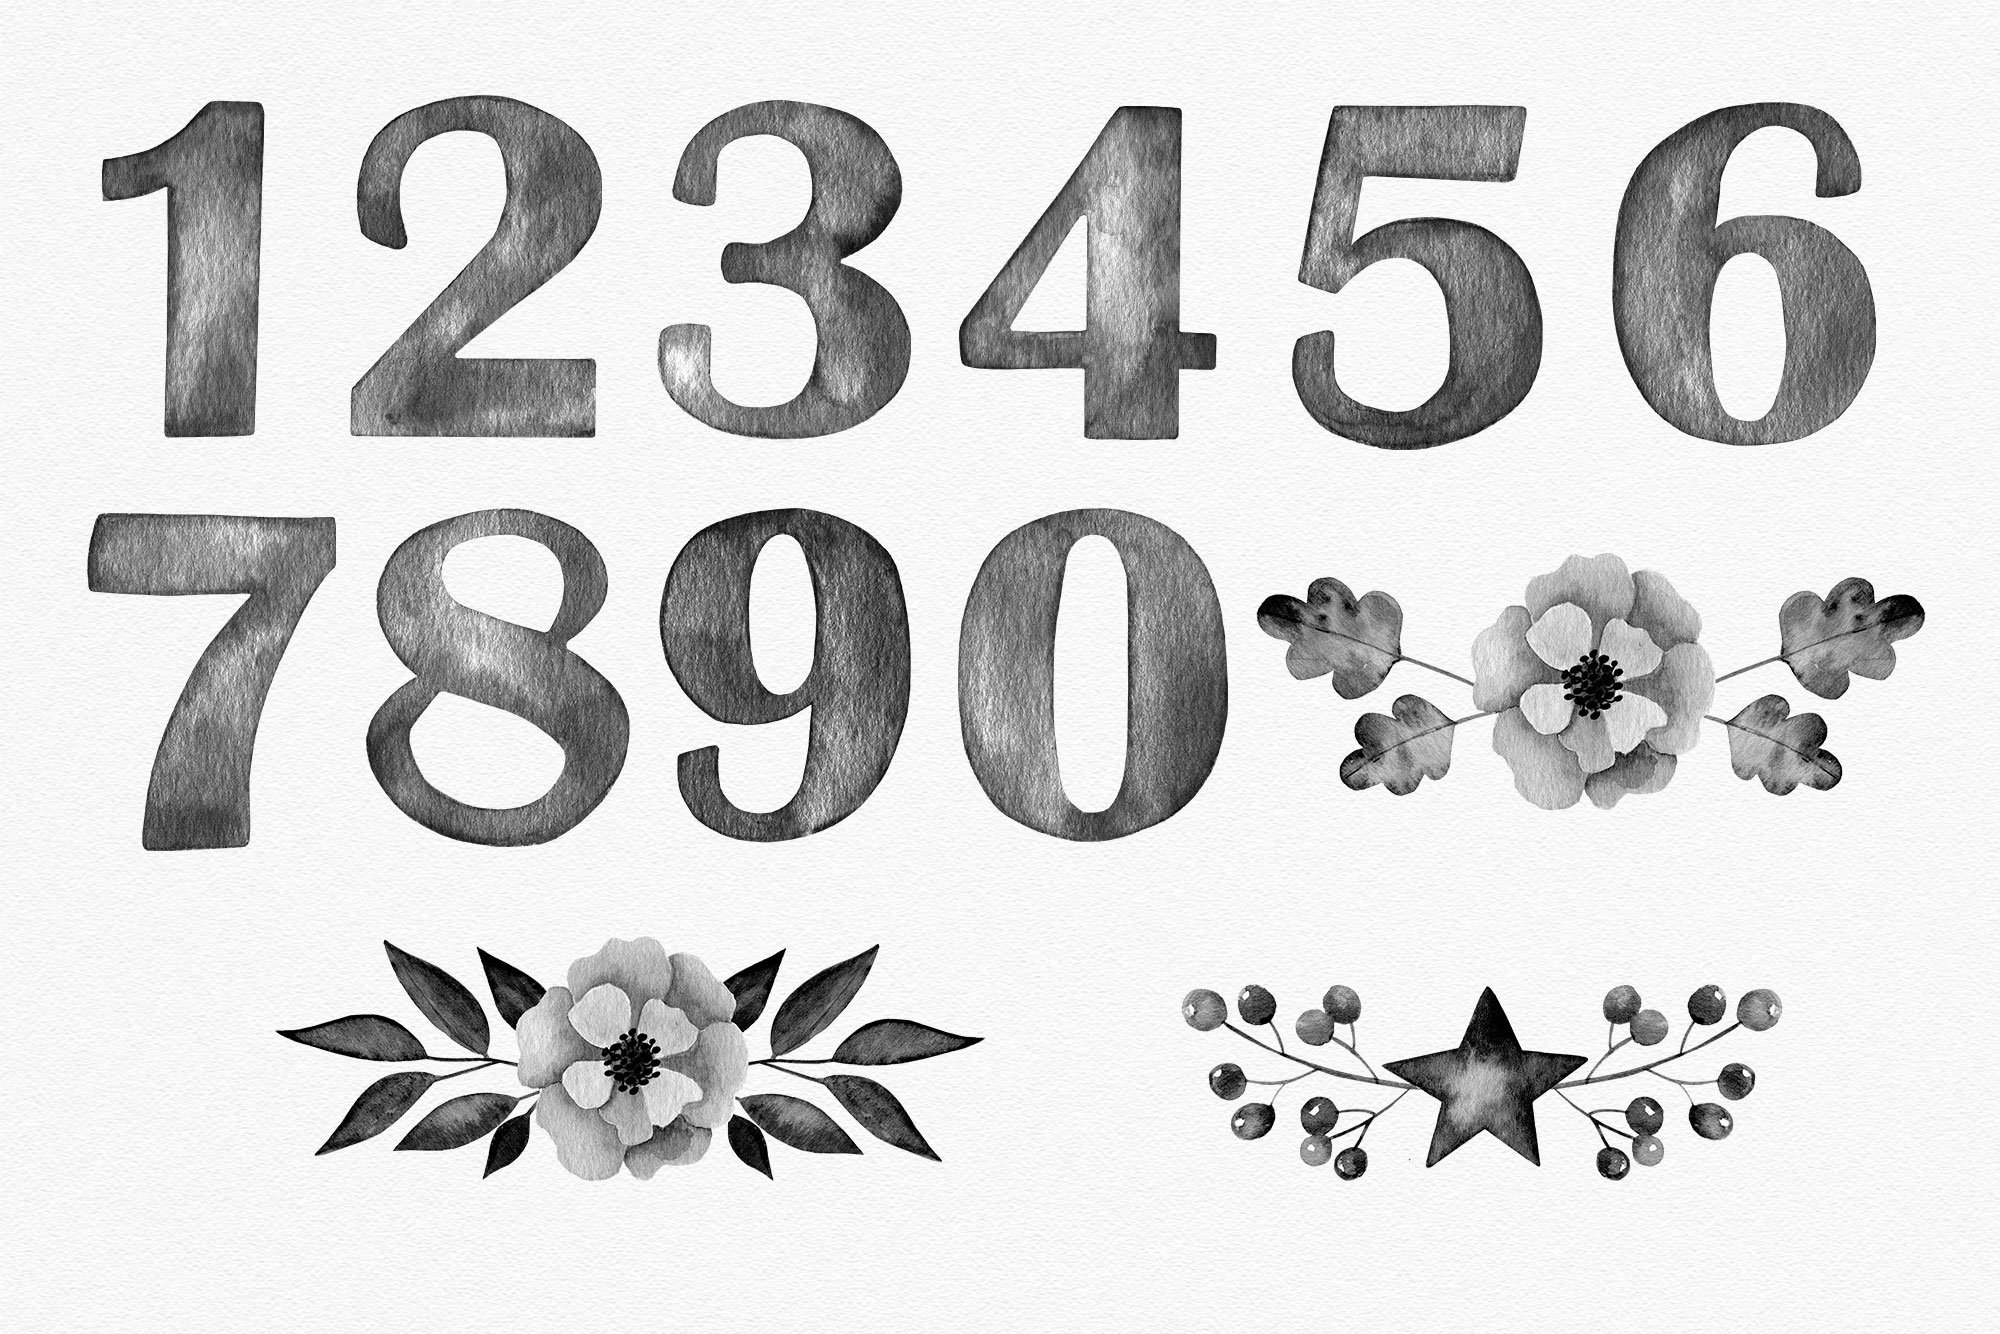 Black watercolor number cliparts with flower arrangements example image 4